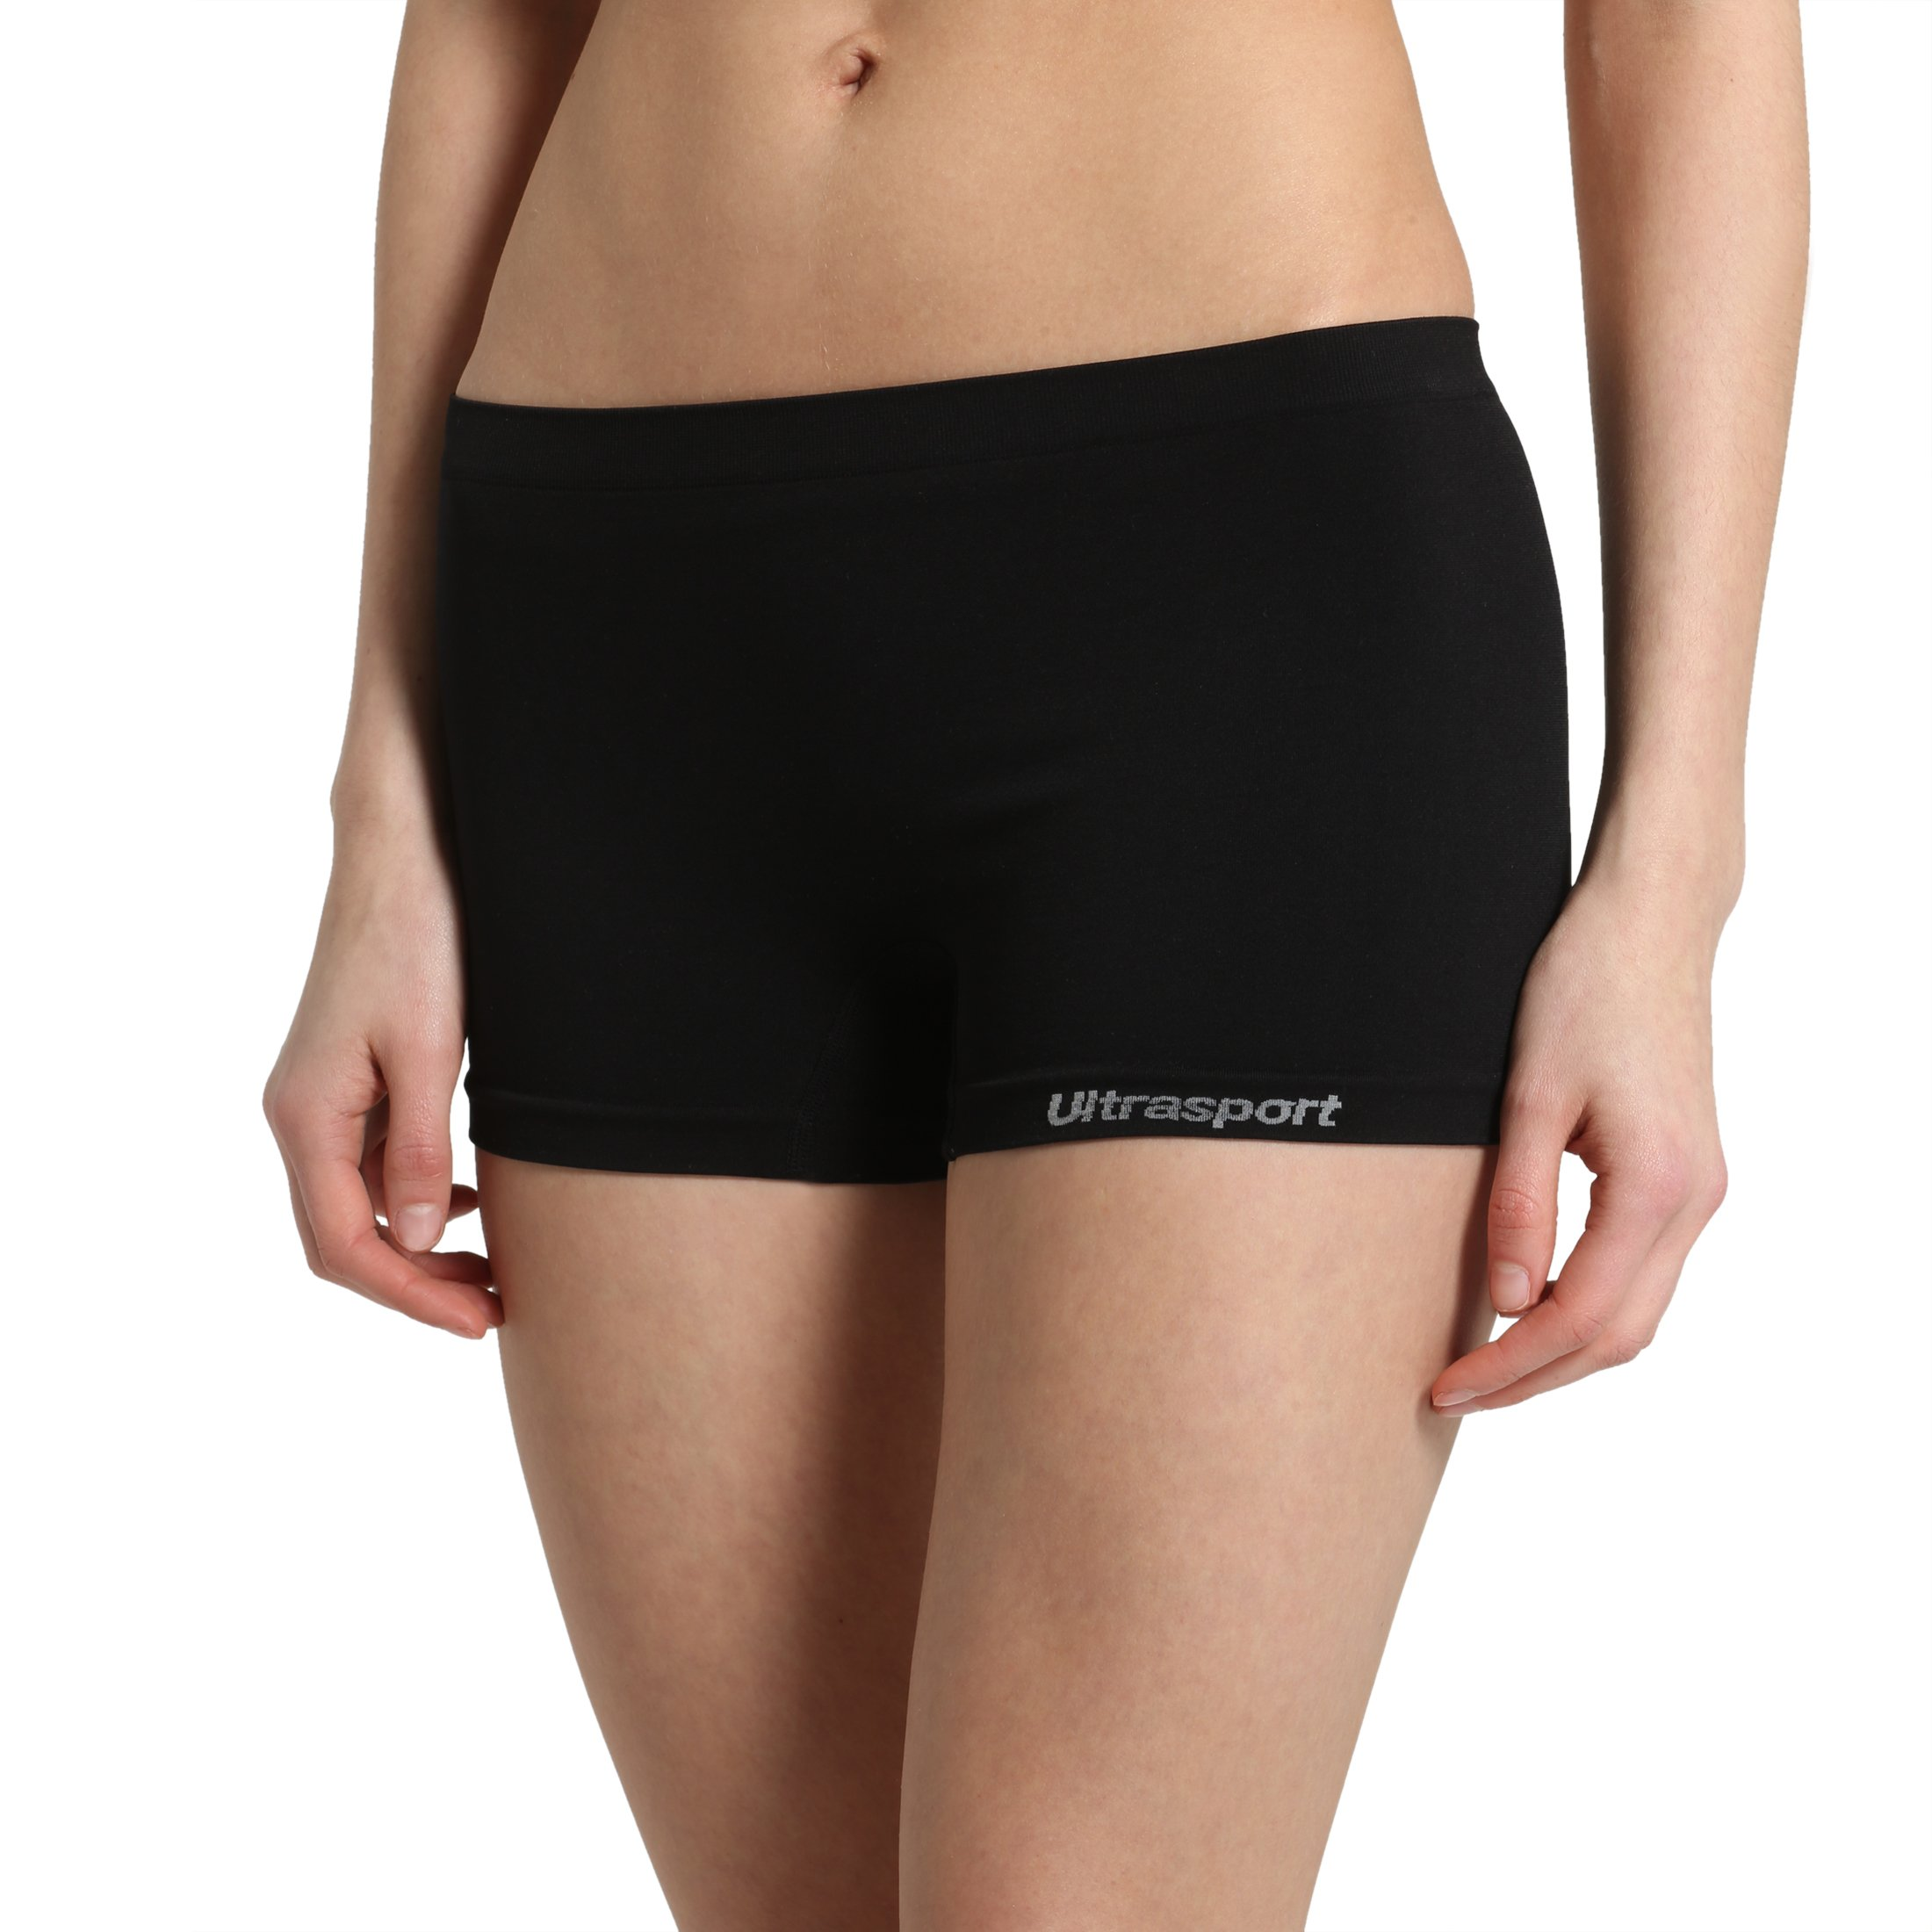 5ce3251c56038 Ultrasport Women's Functional Sport Hot Pants Hipsters, perfect ...